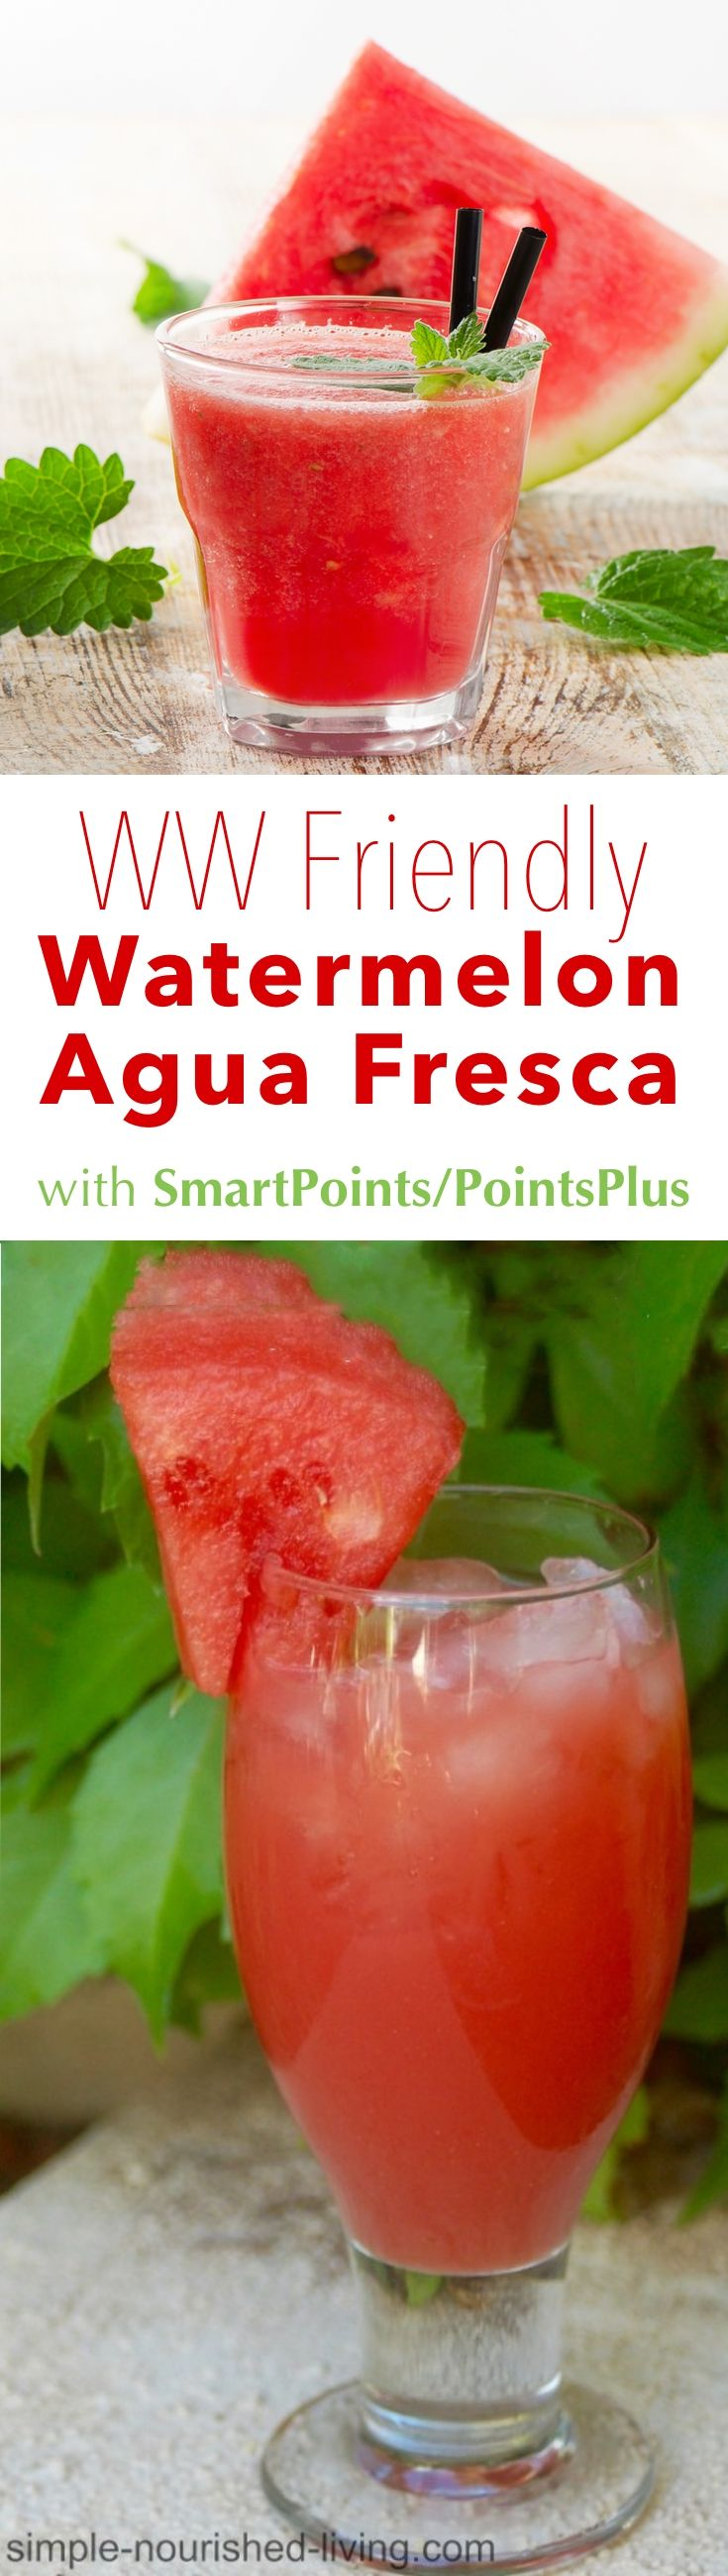 This simple concoction of watermelon blended with water, lime juice and a little sugar makes a delightful thirst quencher for Weight Watchers on a hot day. Substitute cantaloupe if you prefer. *2 Weight Watchers PointsPlus, *1 SmartPoint per serving!